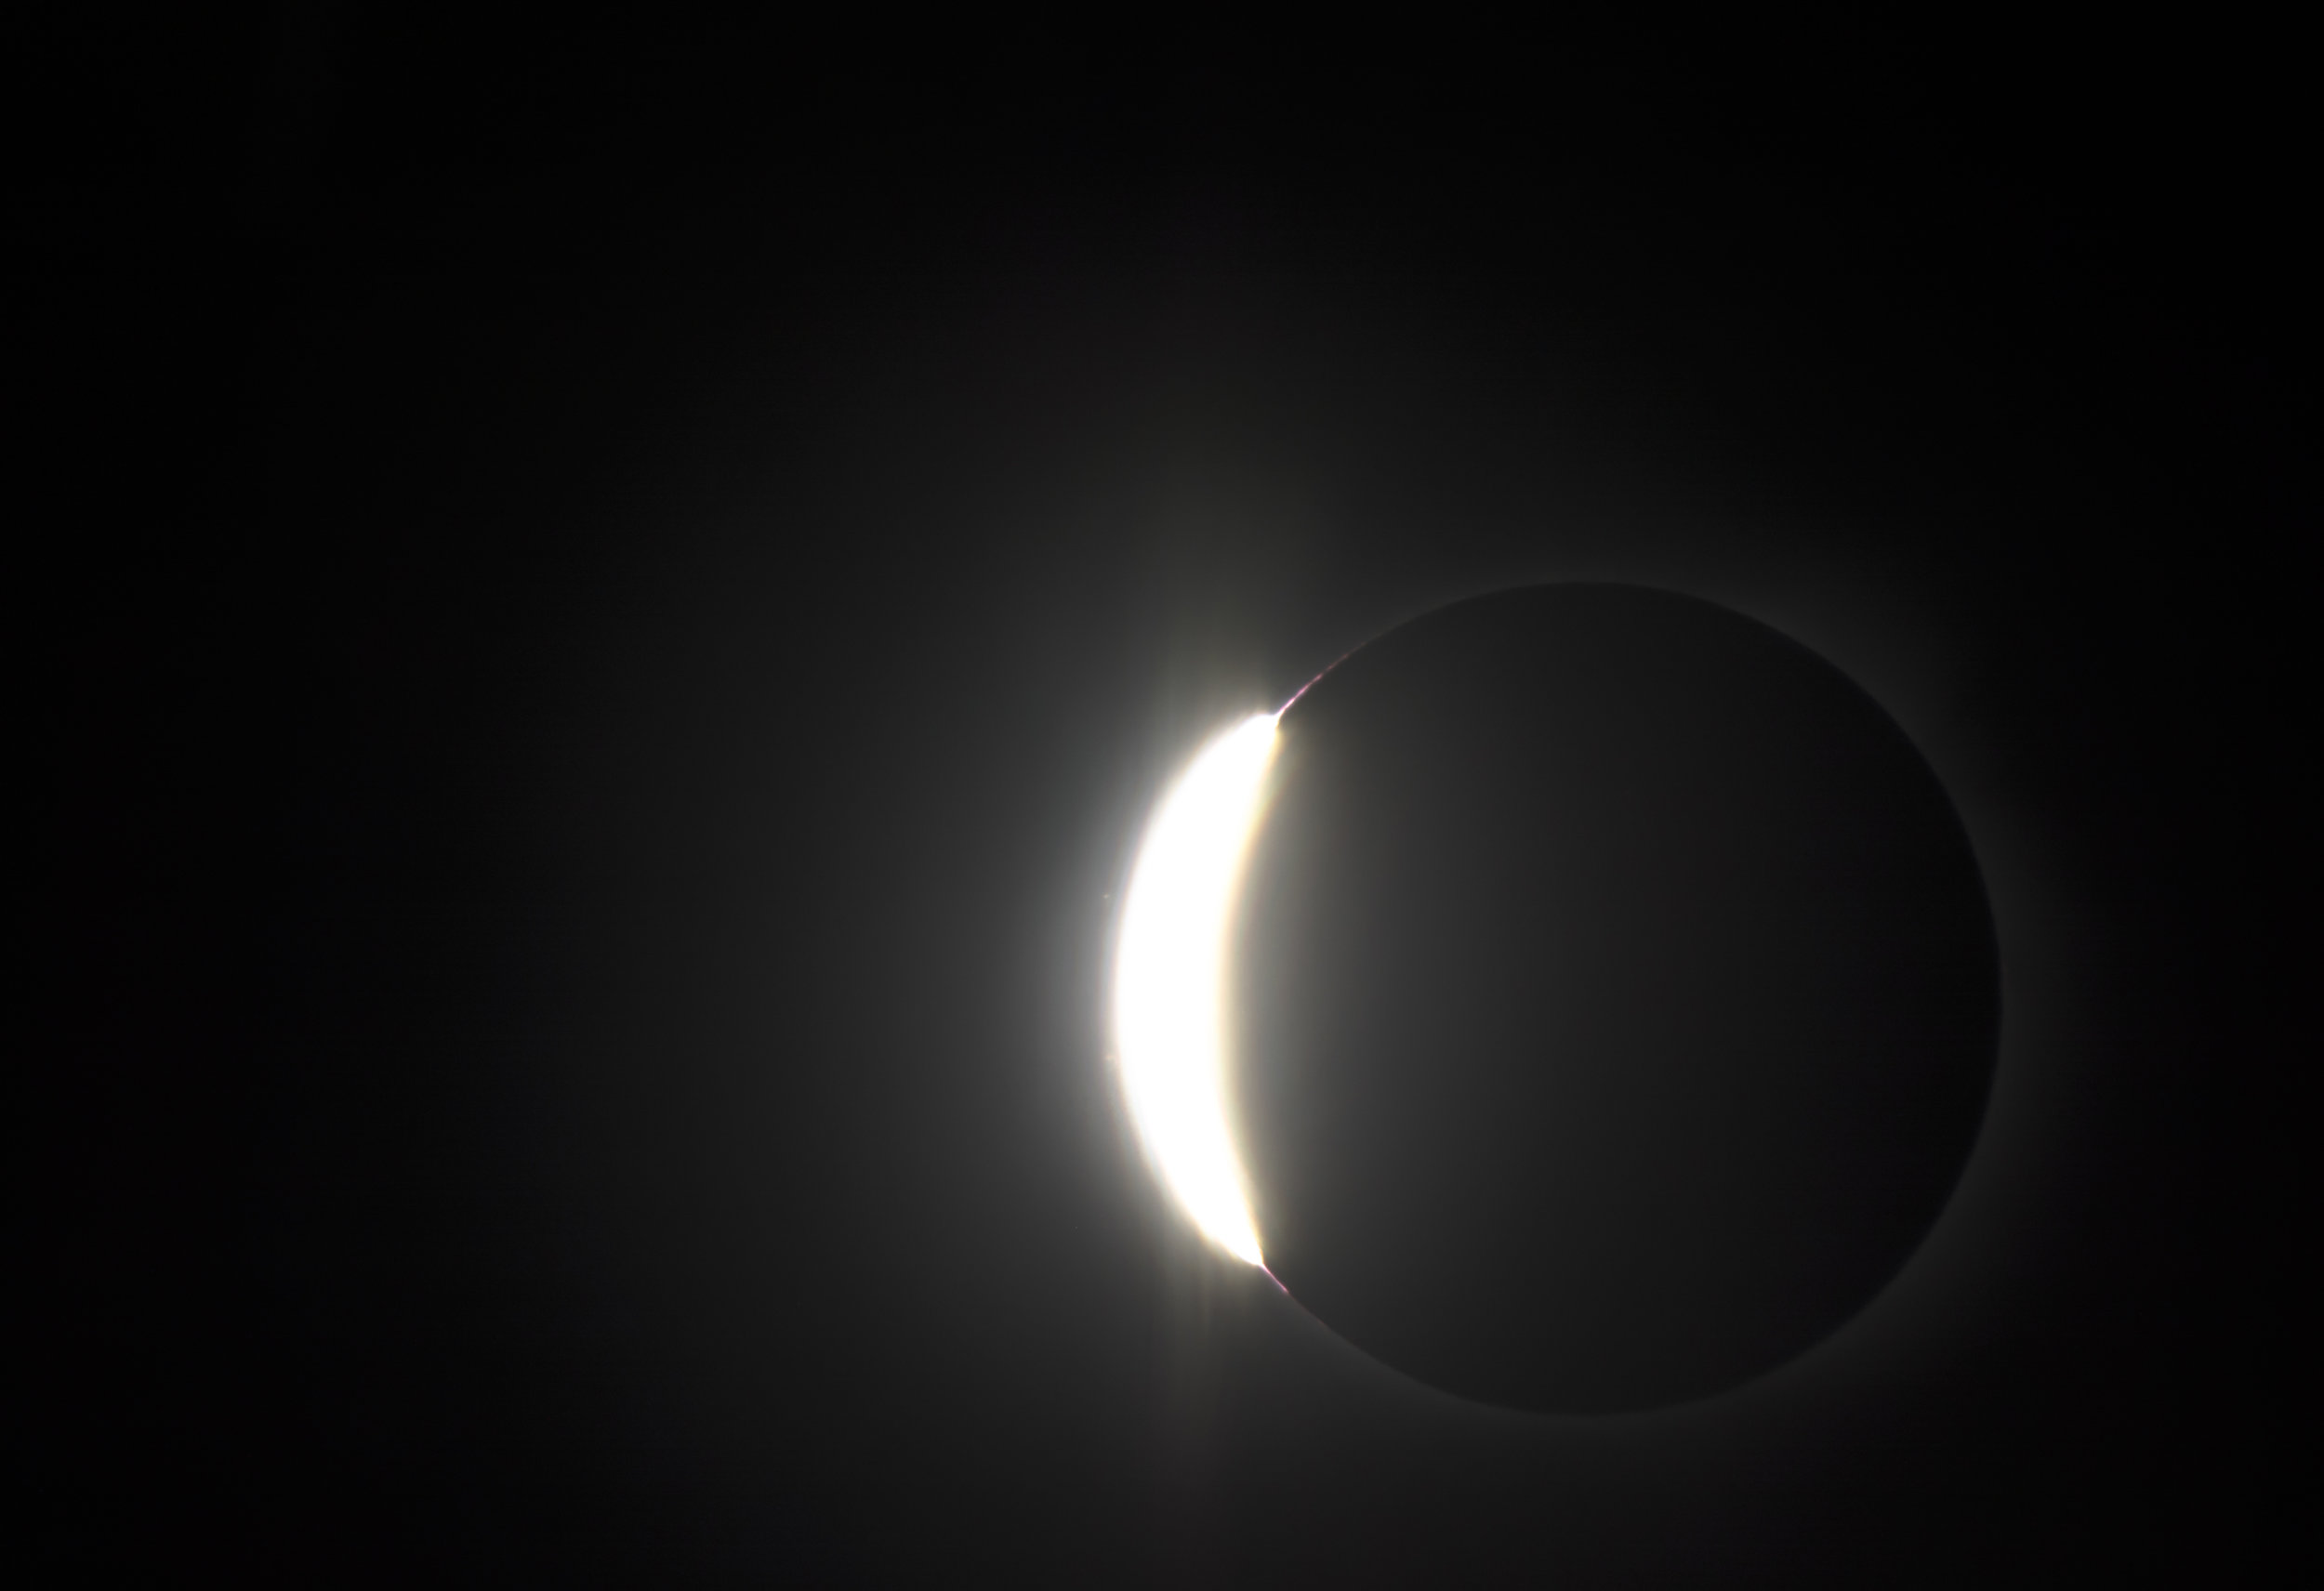 Totality, part 2